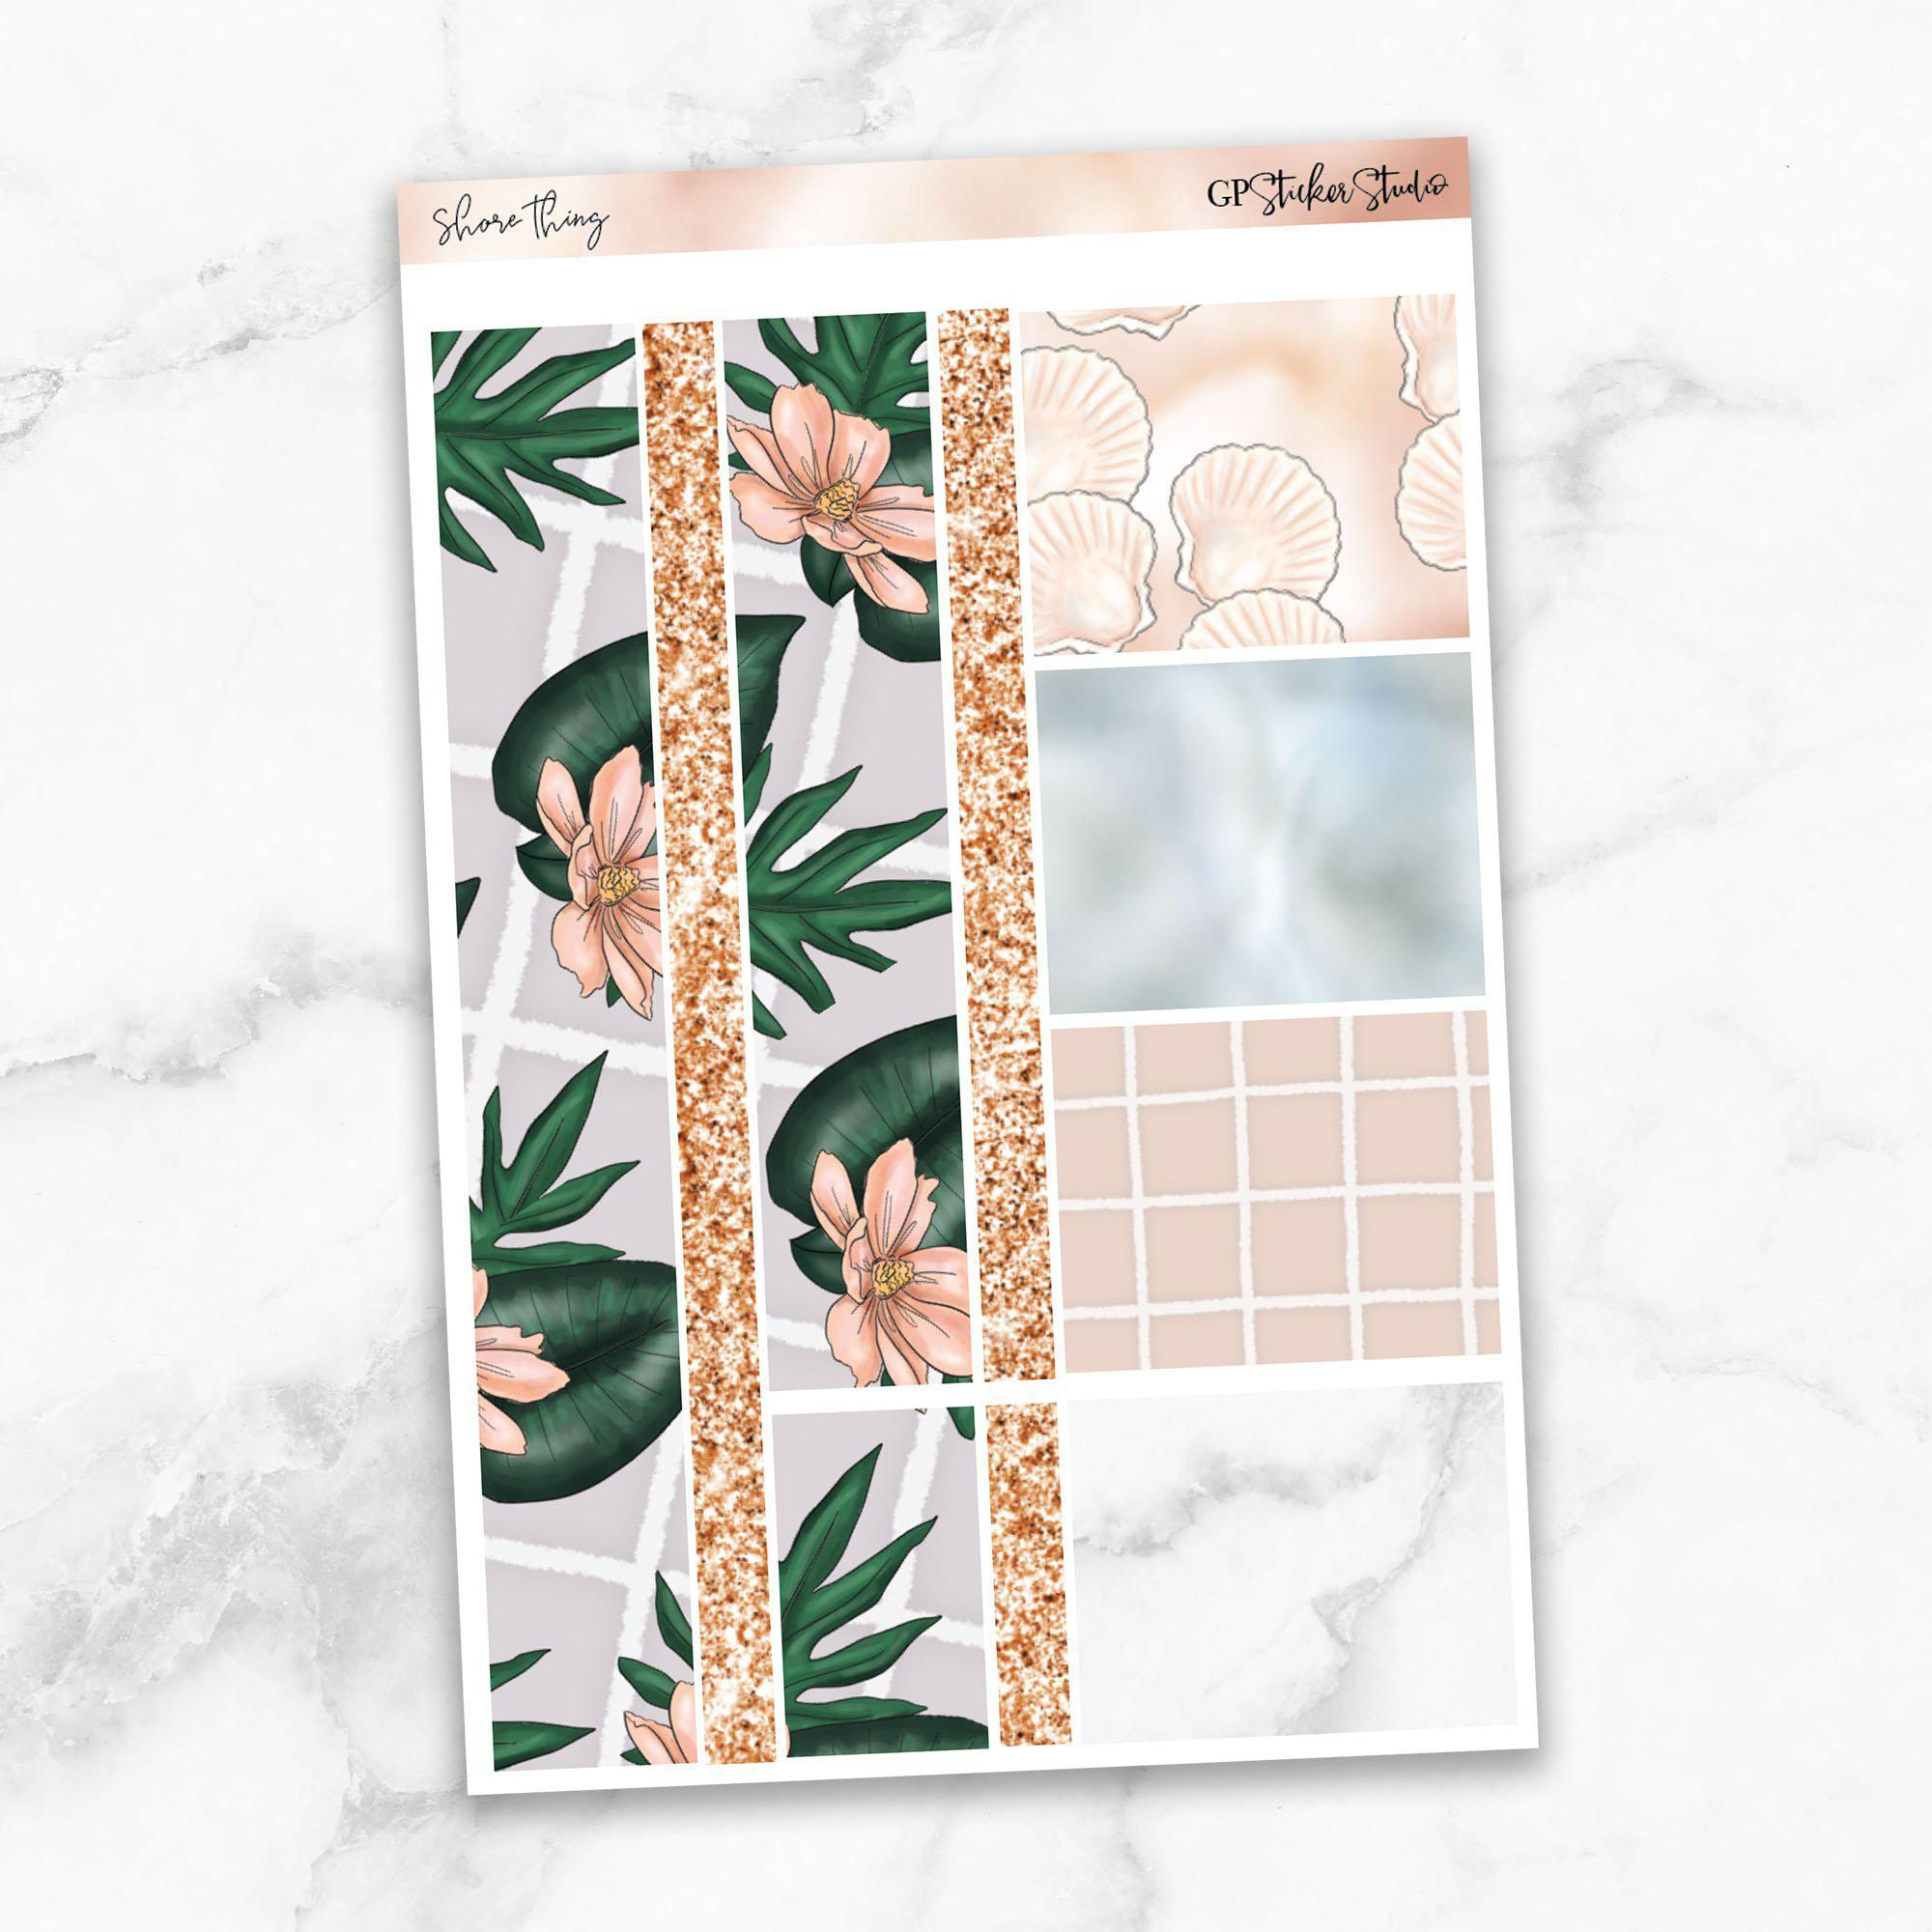 SHORE THING Washi Sheet Stickers-The GP Studio